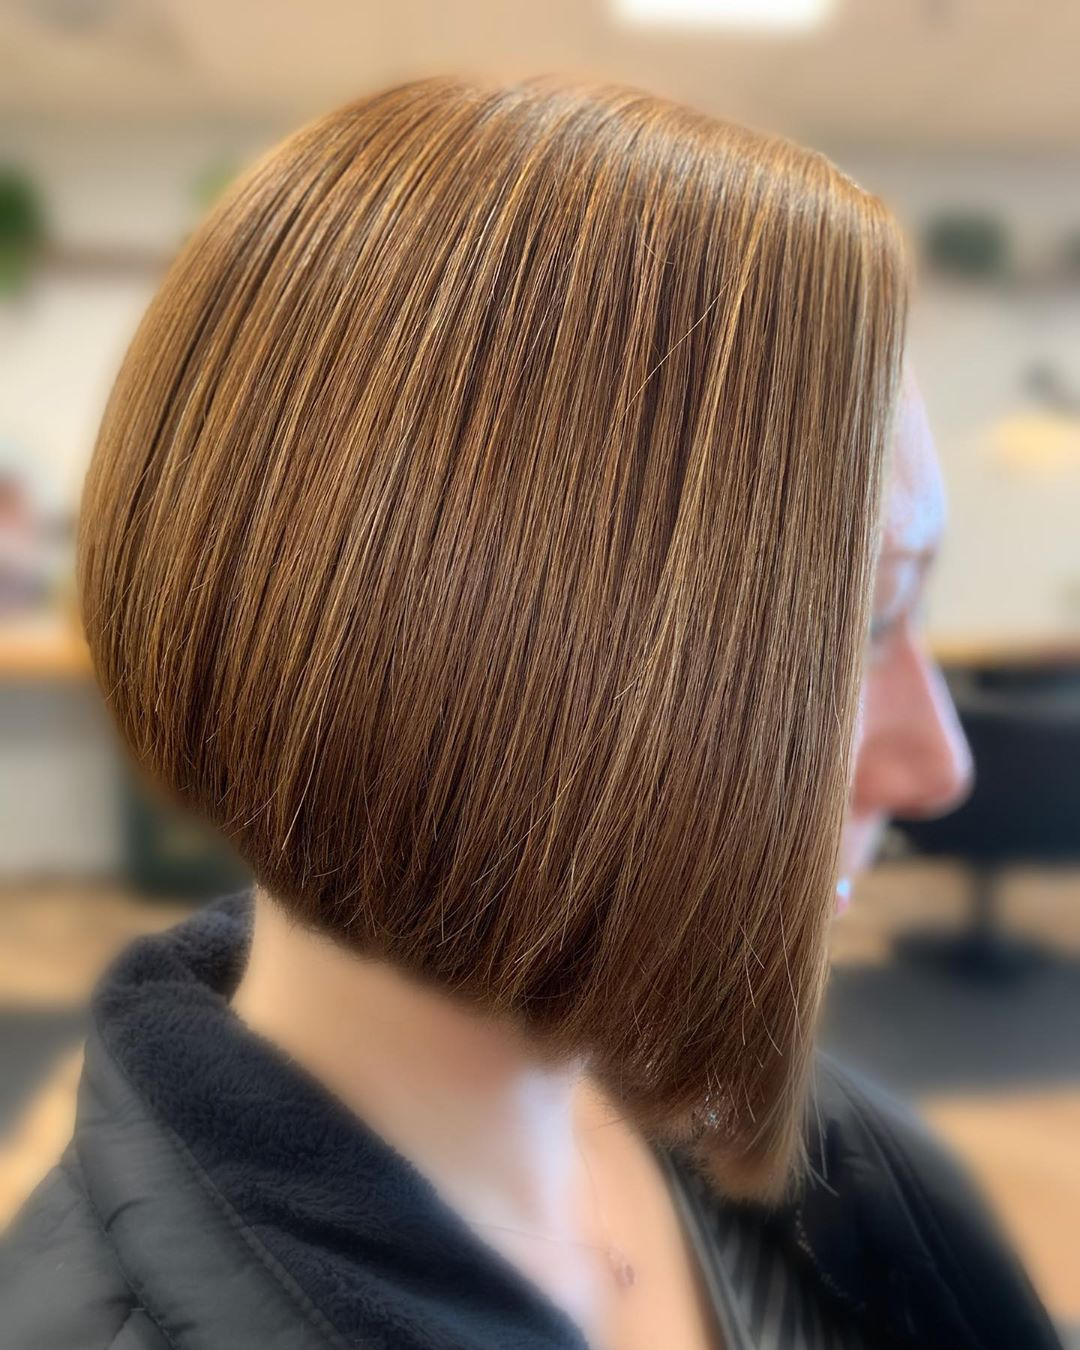 20 Short Hair Color Ideas For A Change Up In 2020